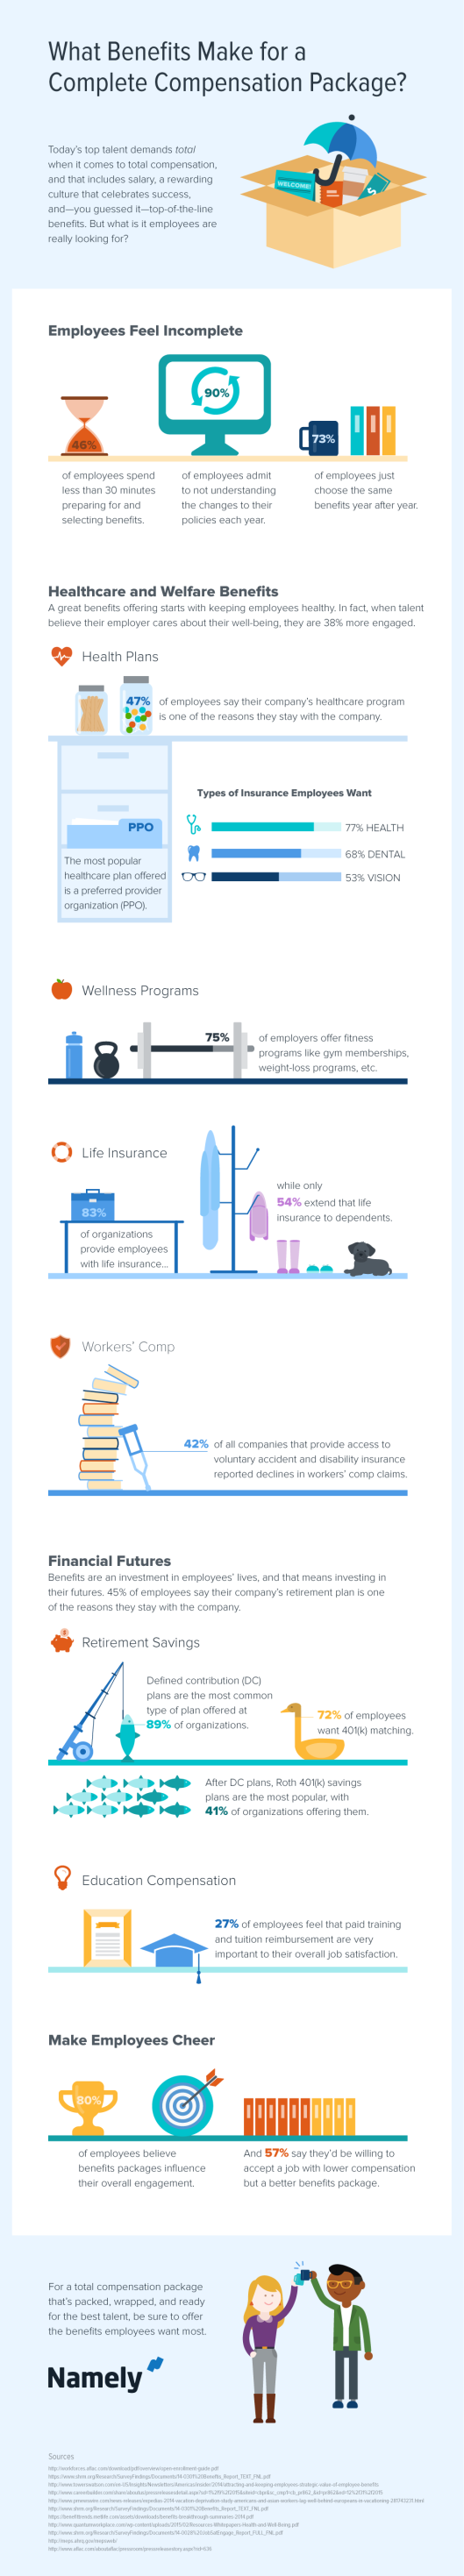 Namely-HR-Benefits-Infographic